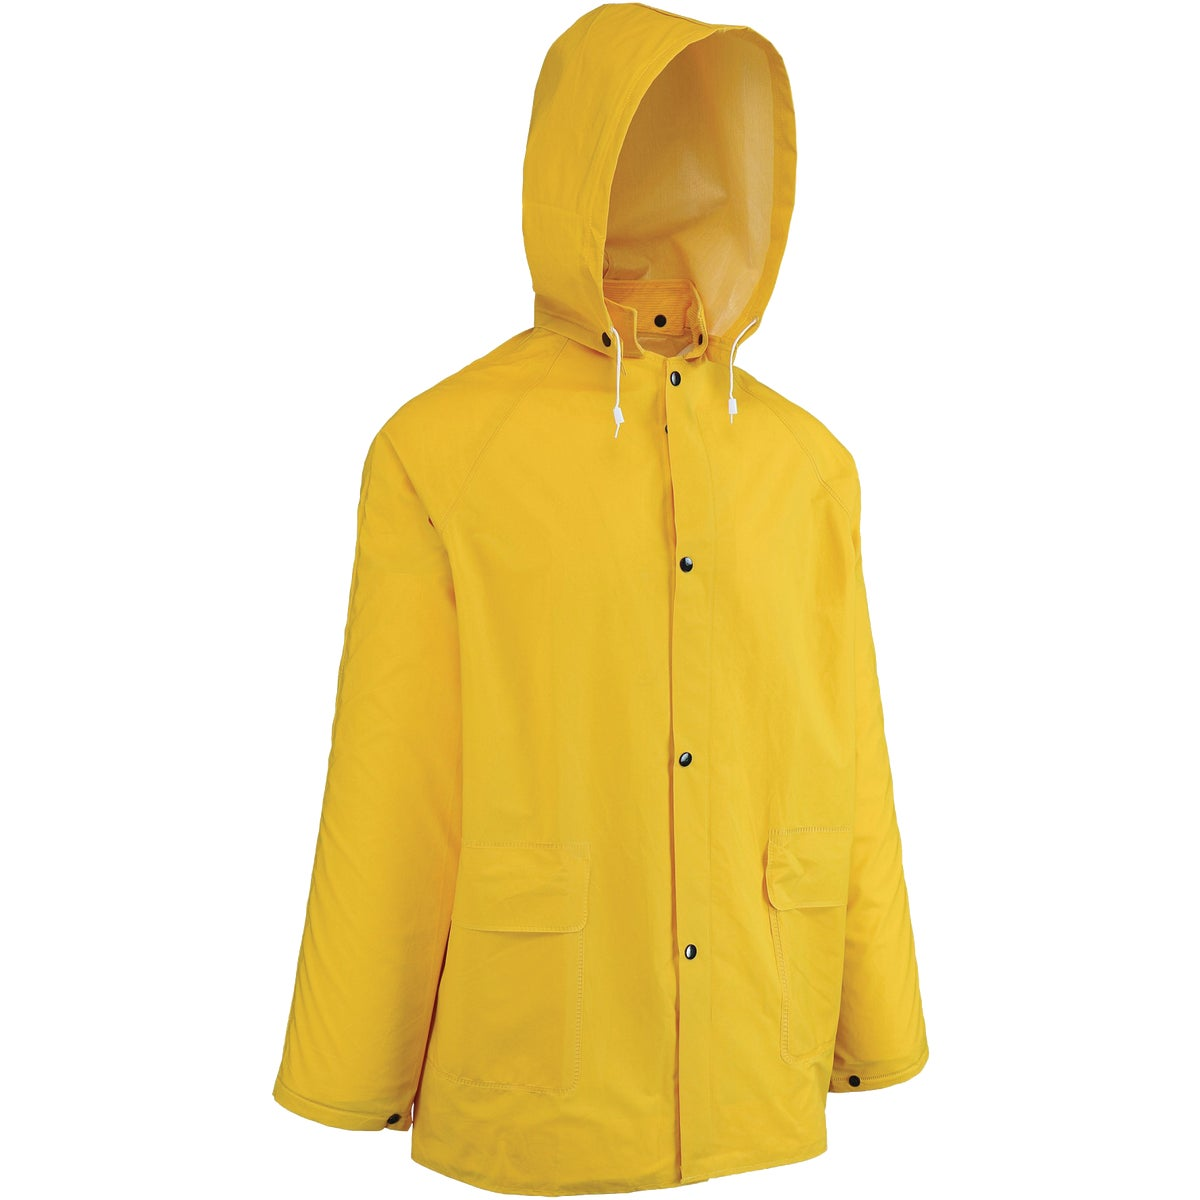 LRG 2PC RAIN JACKET - R114L by Custom Leathercraft